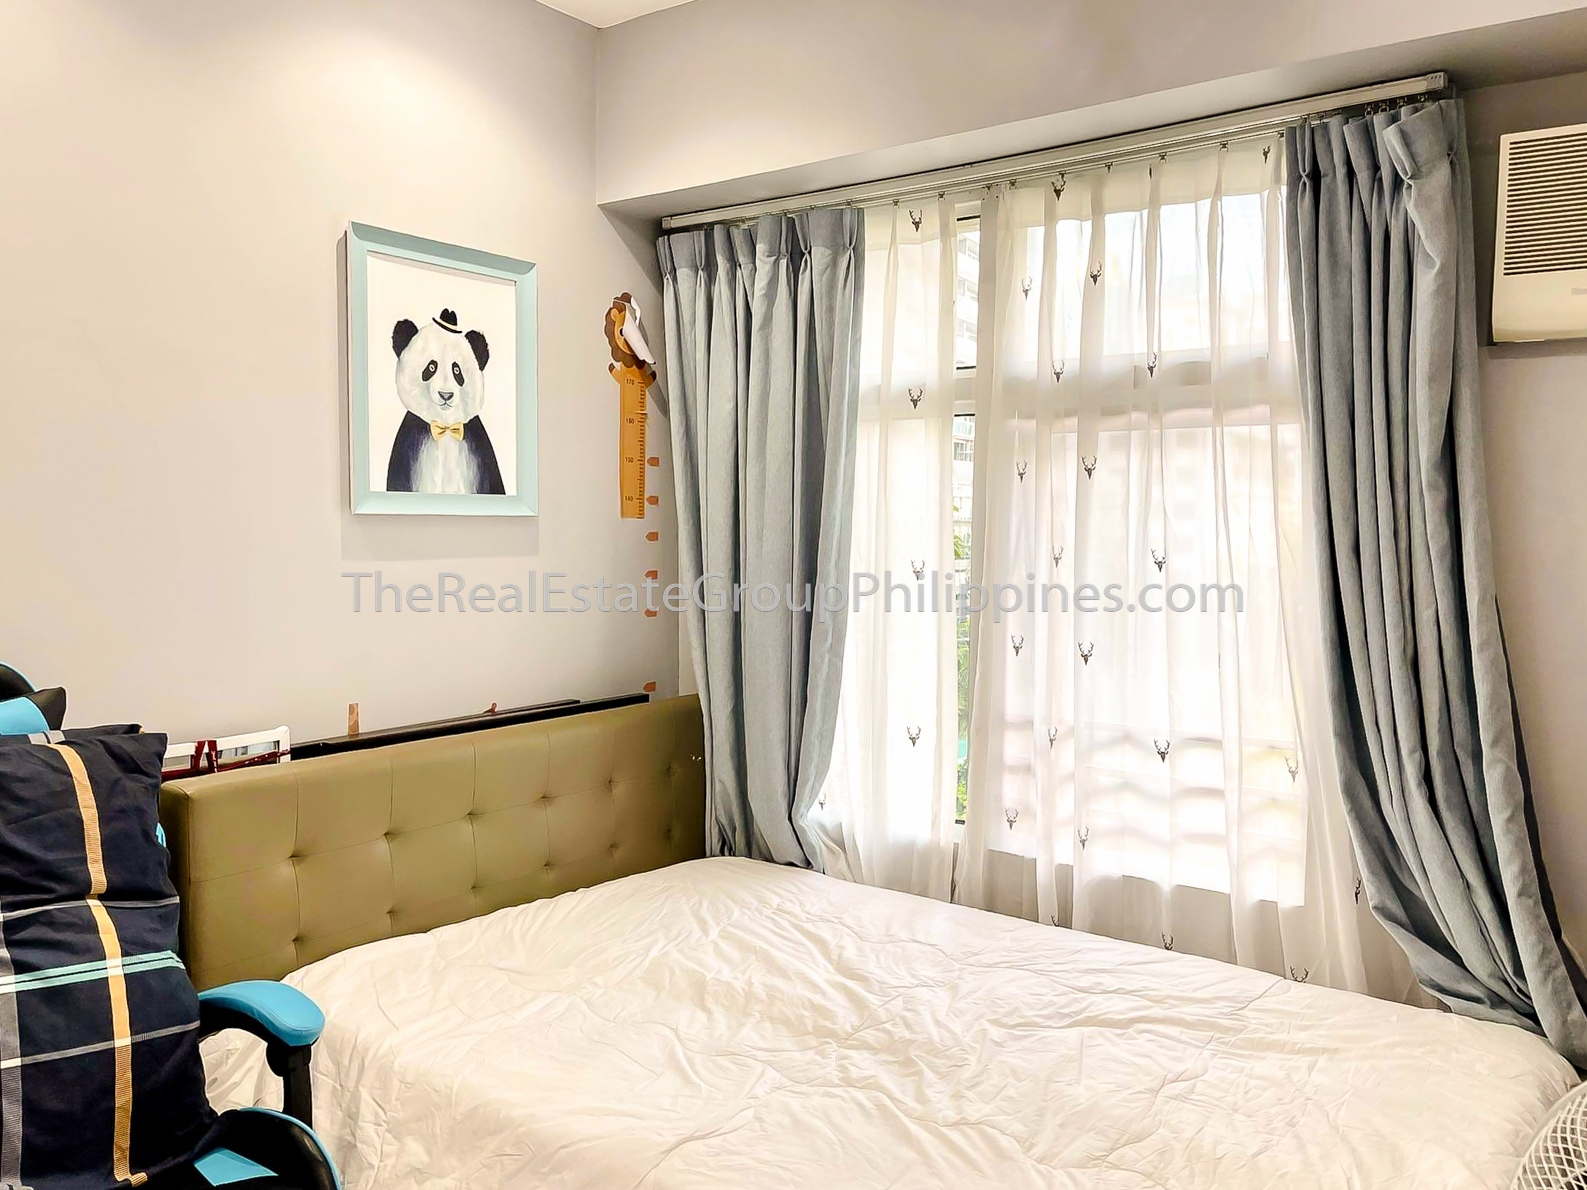 3BR Condo For Sale, Two Serendra, BGC, Taguig City 25M-7